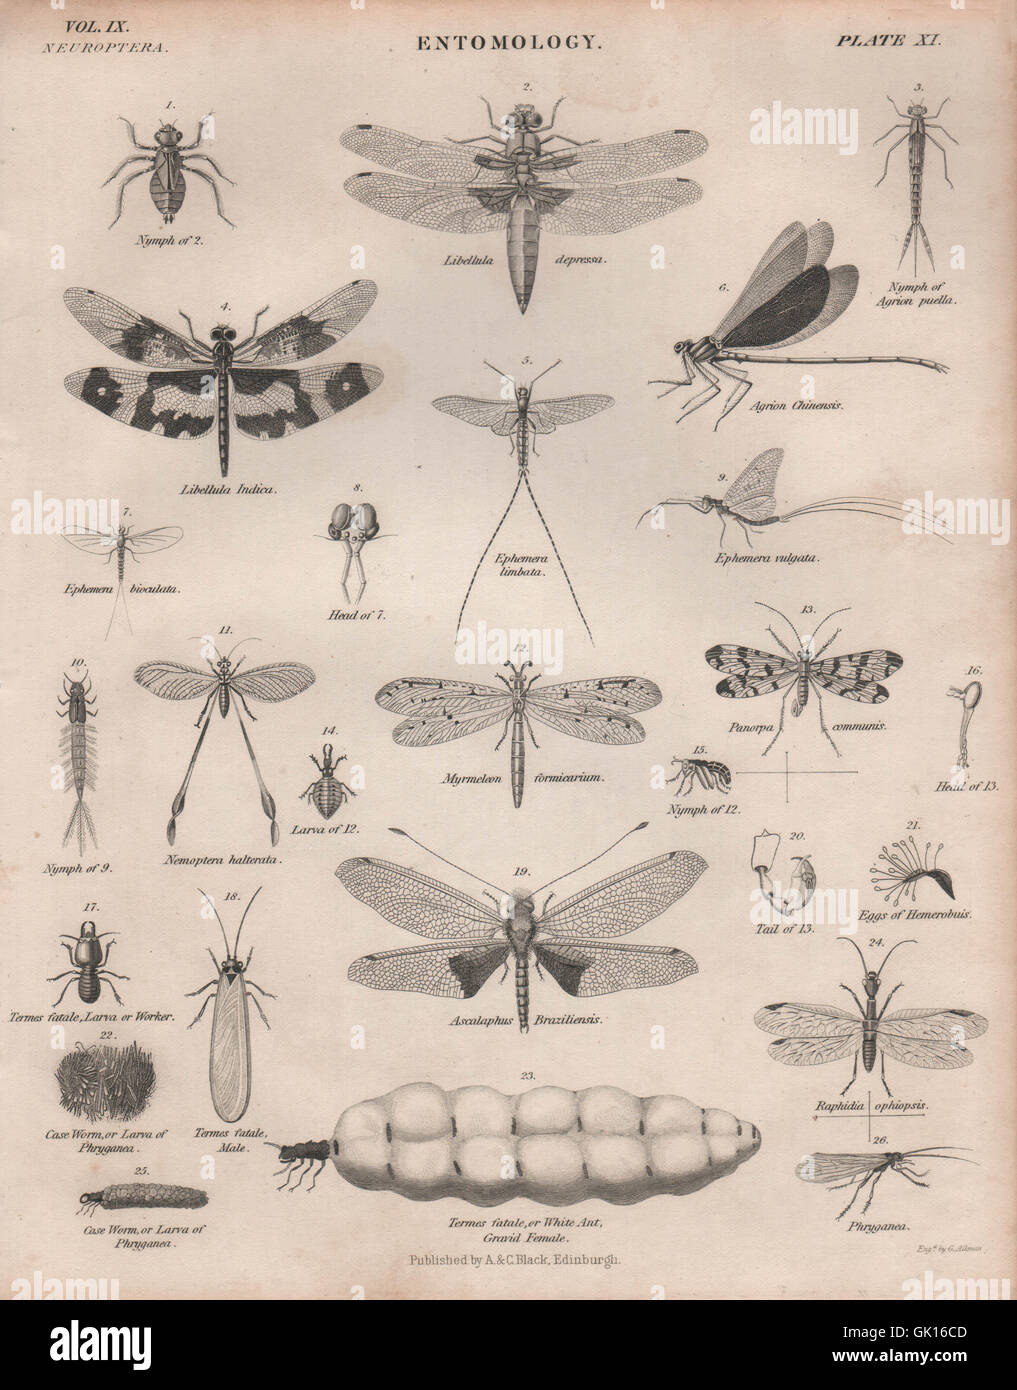 ENTOMOLOGY 11. Insects dragonflies dragonfly. BRITANNICA, antique print 1860 Stock Photo